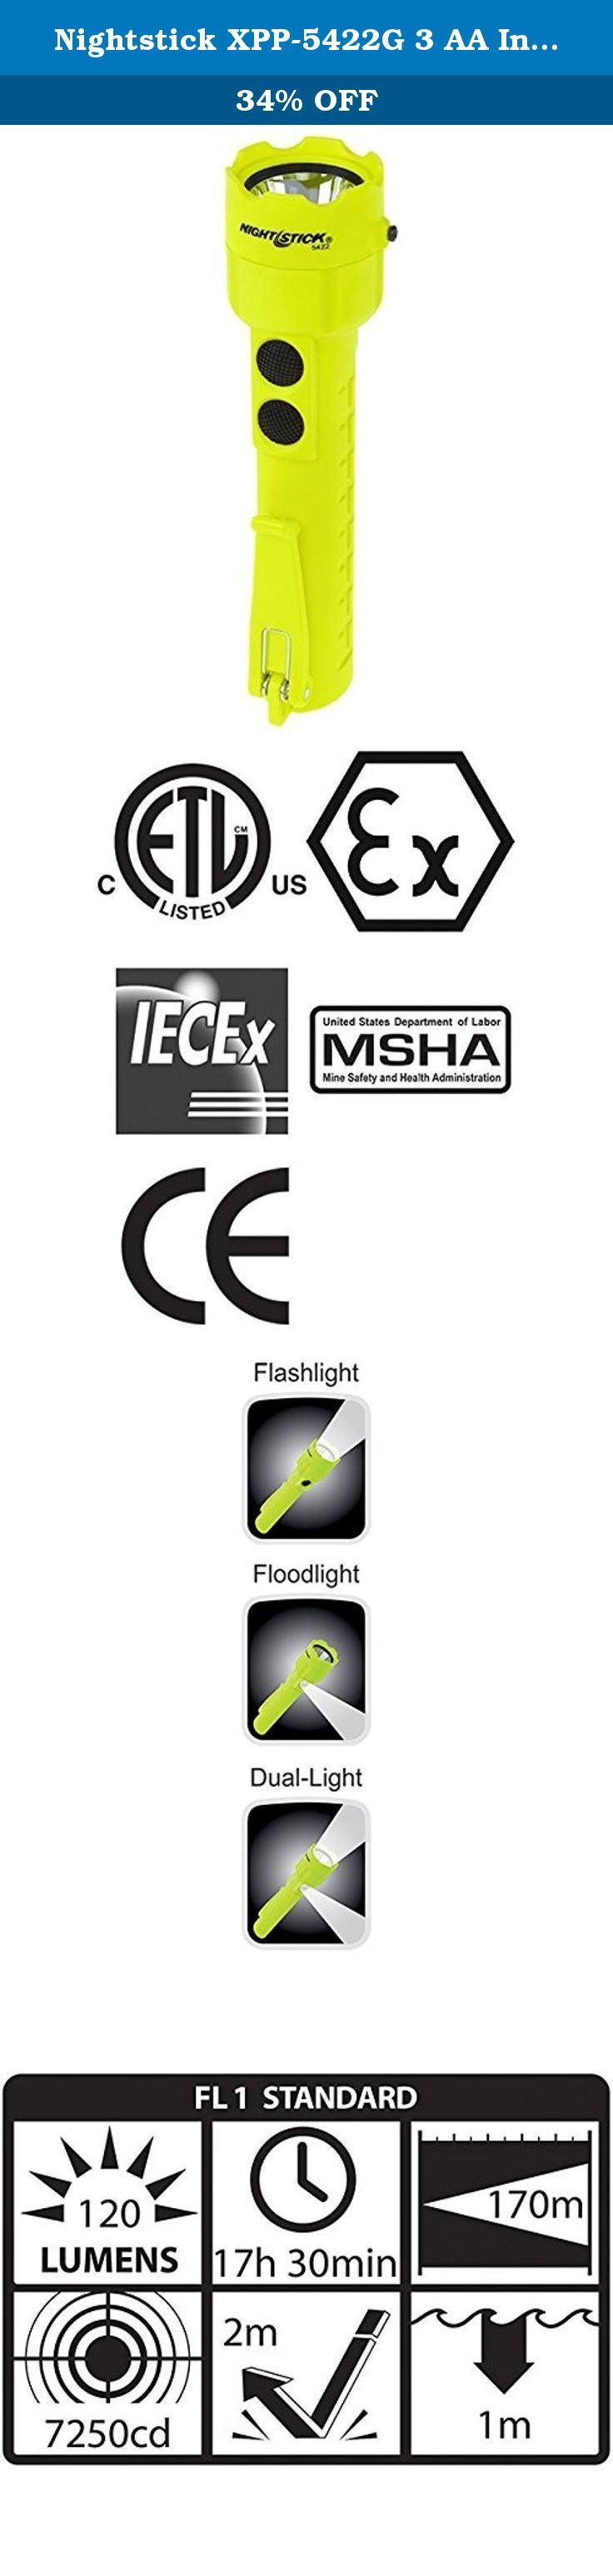 Nightstick XPP-5422G 3 AA Intrinsically Safe Permissible Dual-Light Flashlight, Green. This non-rechargeable dual-light is cETLus, ATEX, IECEx and MSHA listed Intrinsically Safe Permissible for use in both above and below ground hazardous locations where explosive gases and dusts may be present. It uses as CREE LED rated at 120 lumens that works in conjunction with a high-efficiency deep parabolic reflector to create a usable flashlight beam rated at 170 meters. A 120 lumens unfocused...